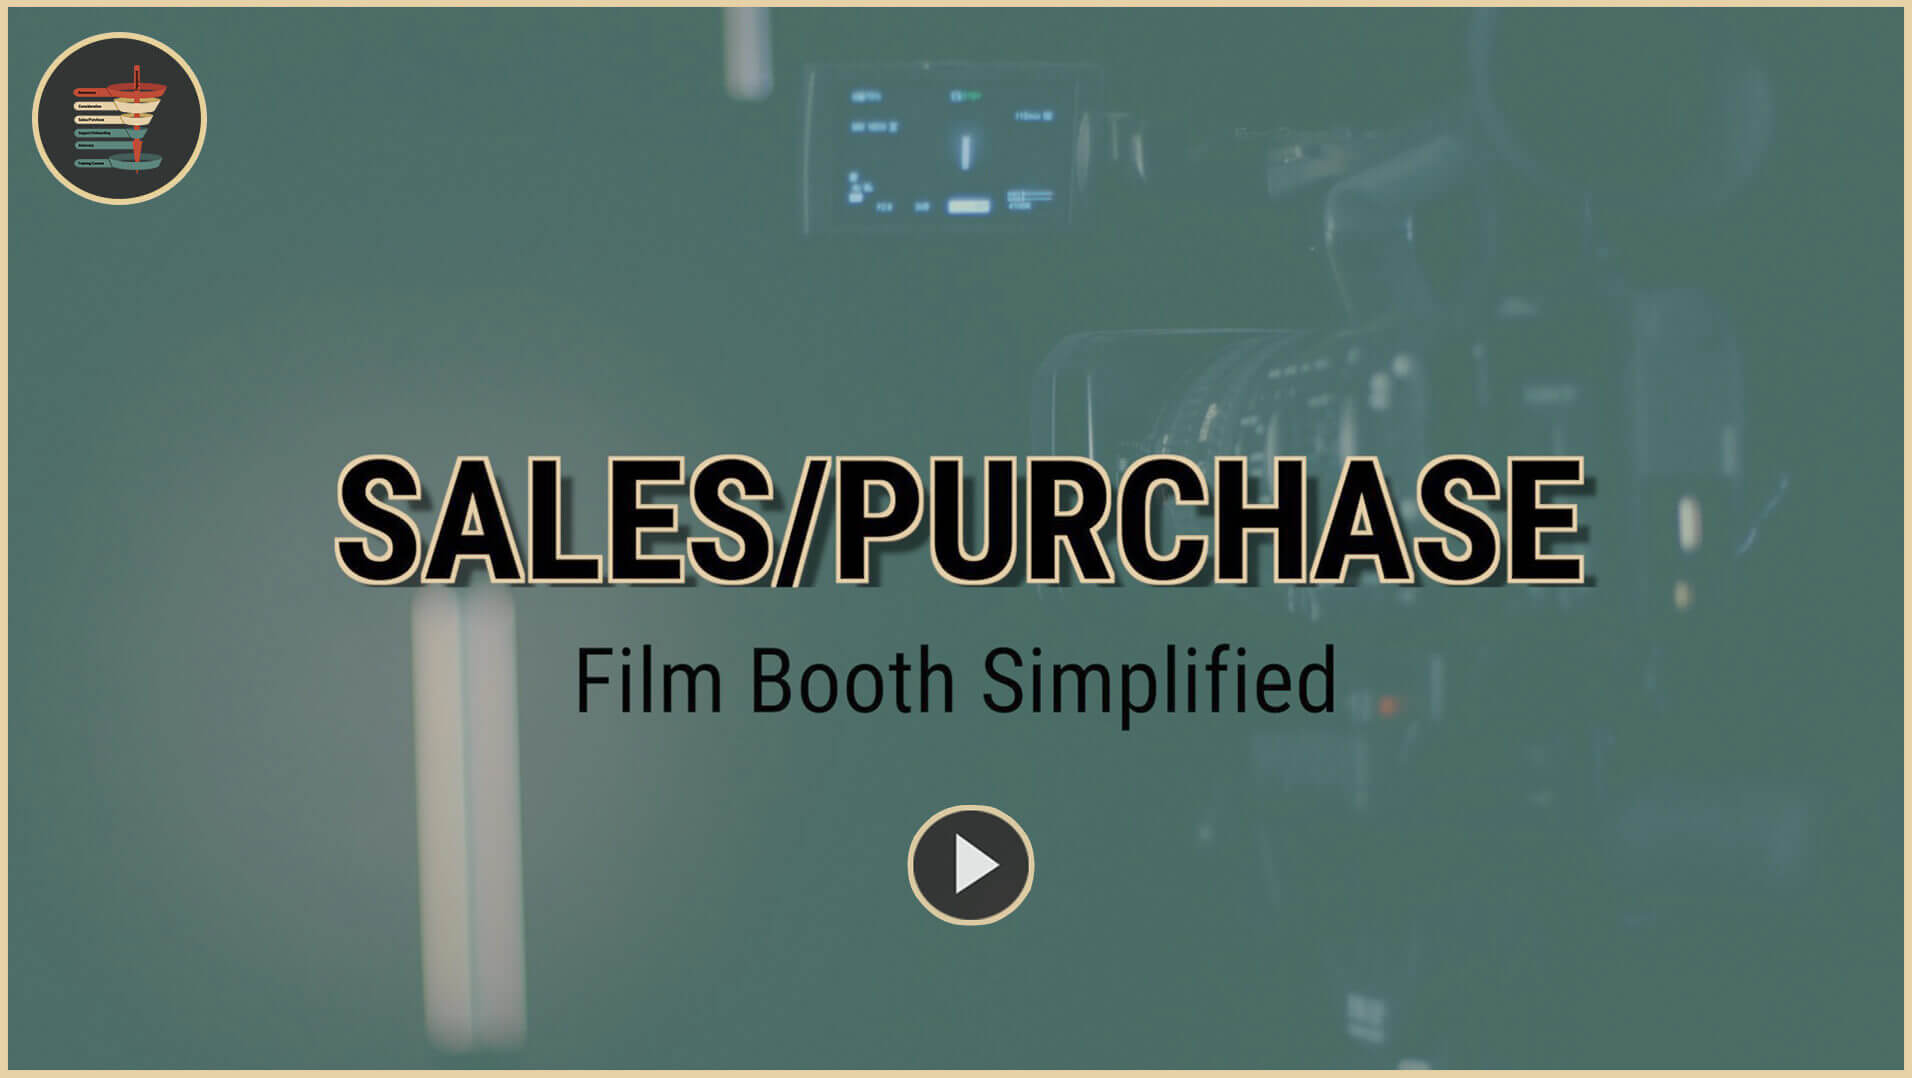 Sales-Purchase thumb